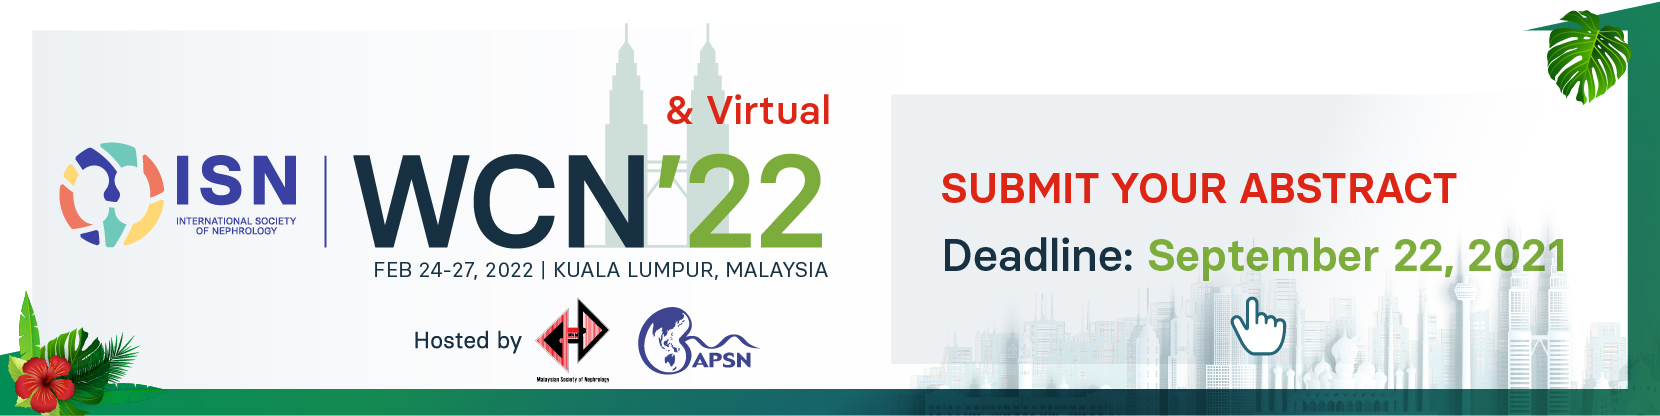 WCN22